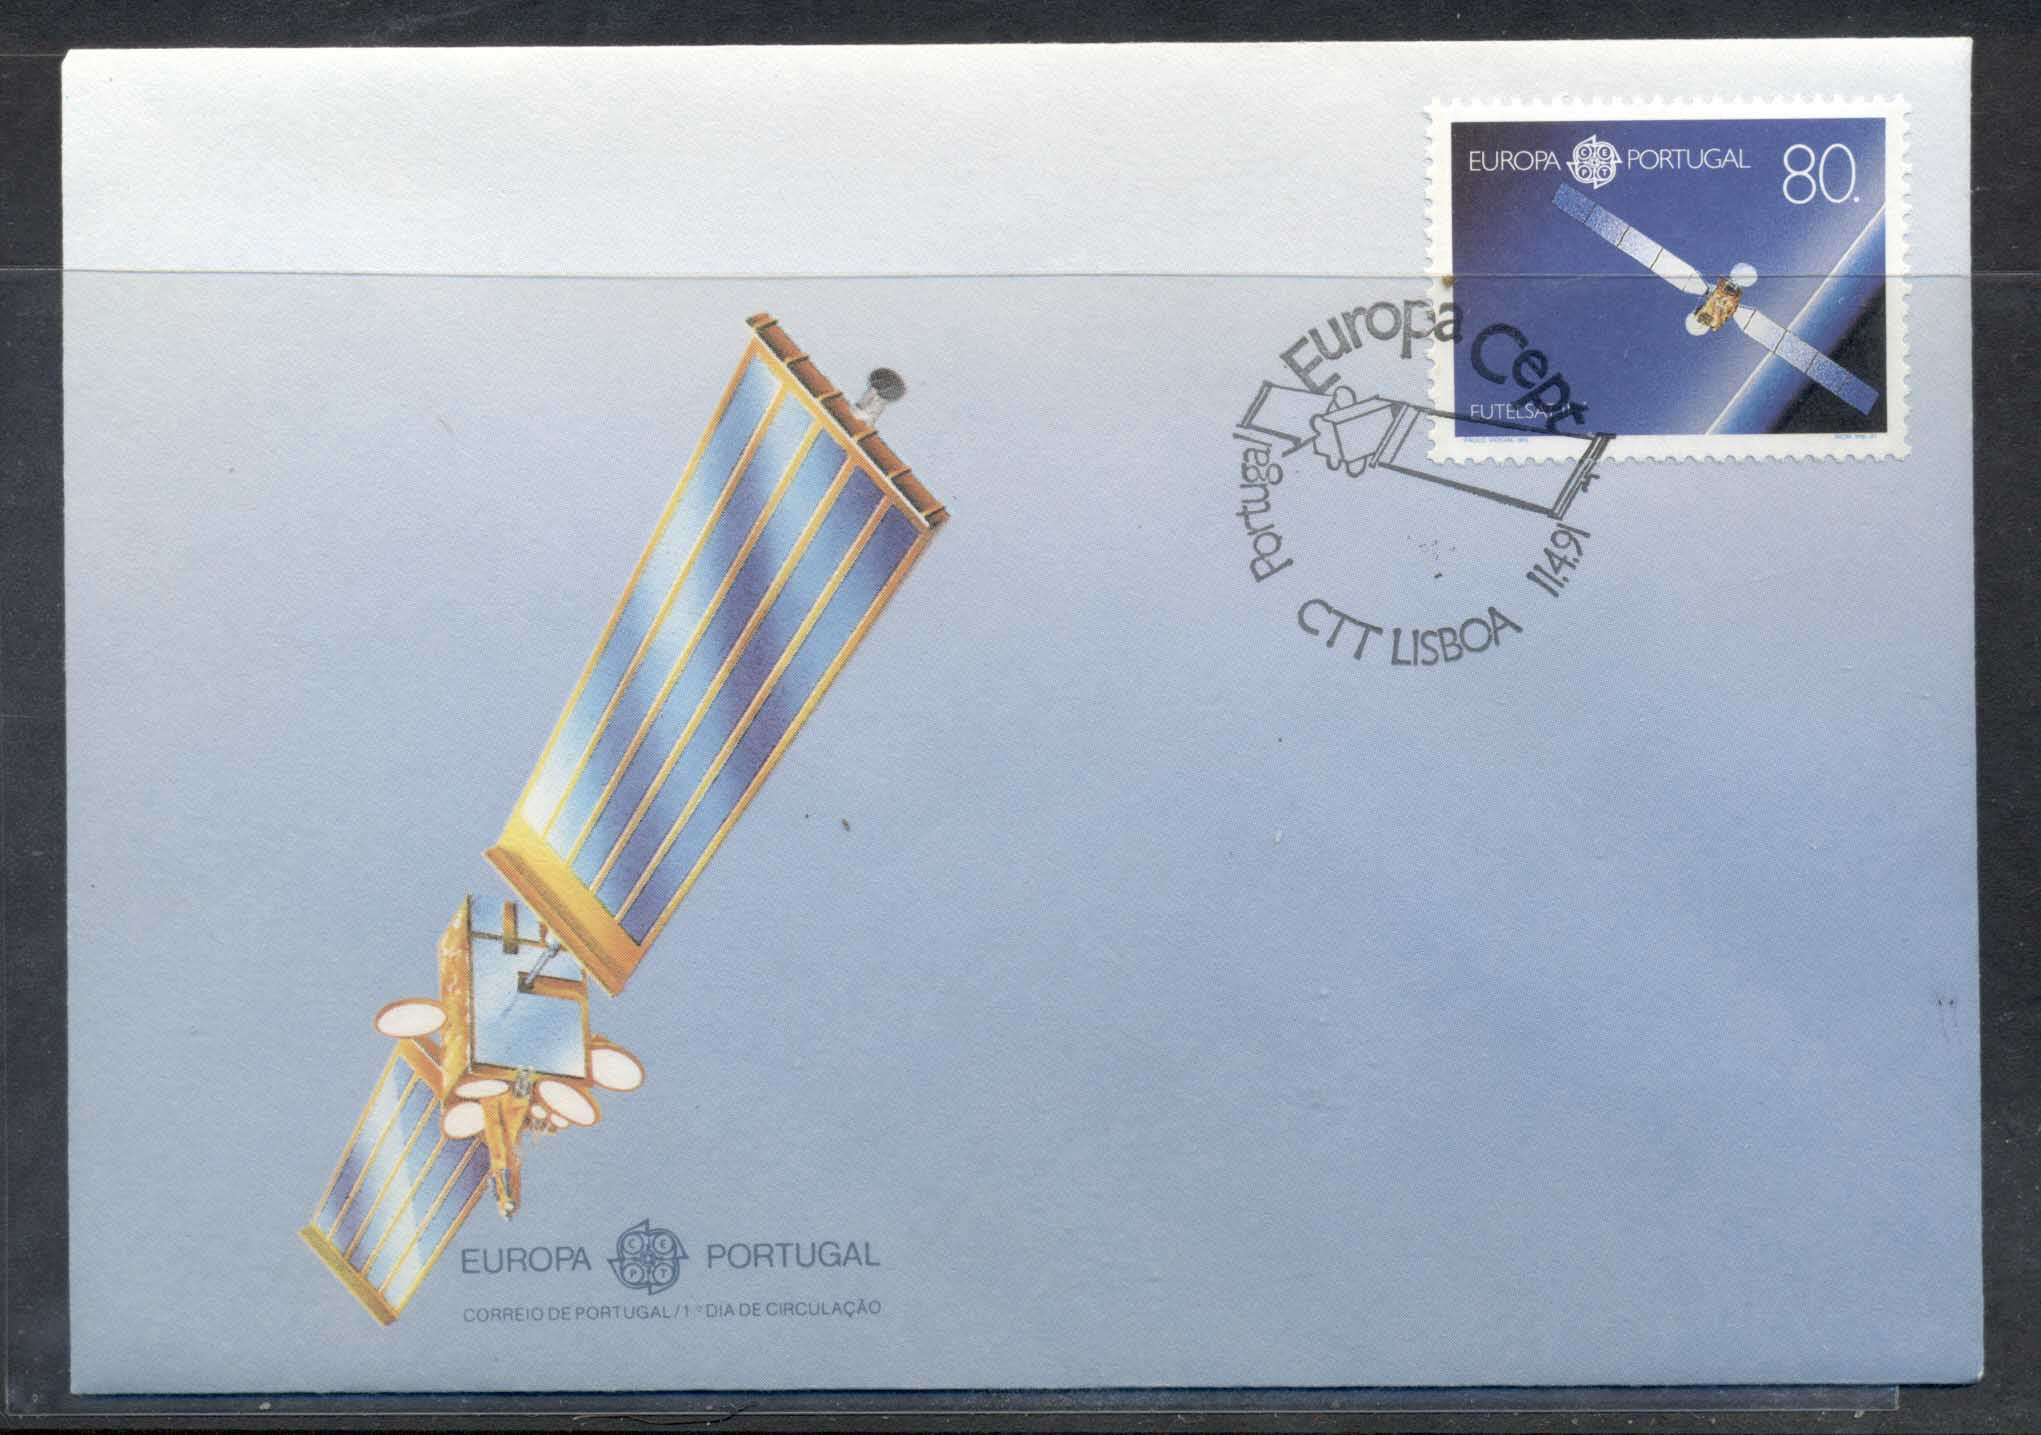 Portugal 1991 Europa Man in Space FDC